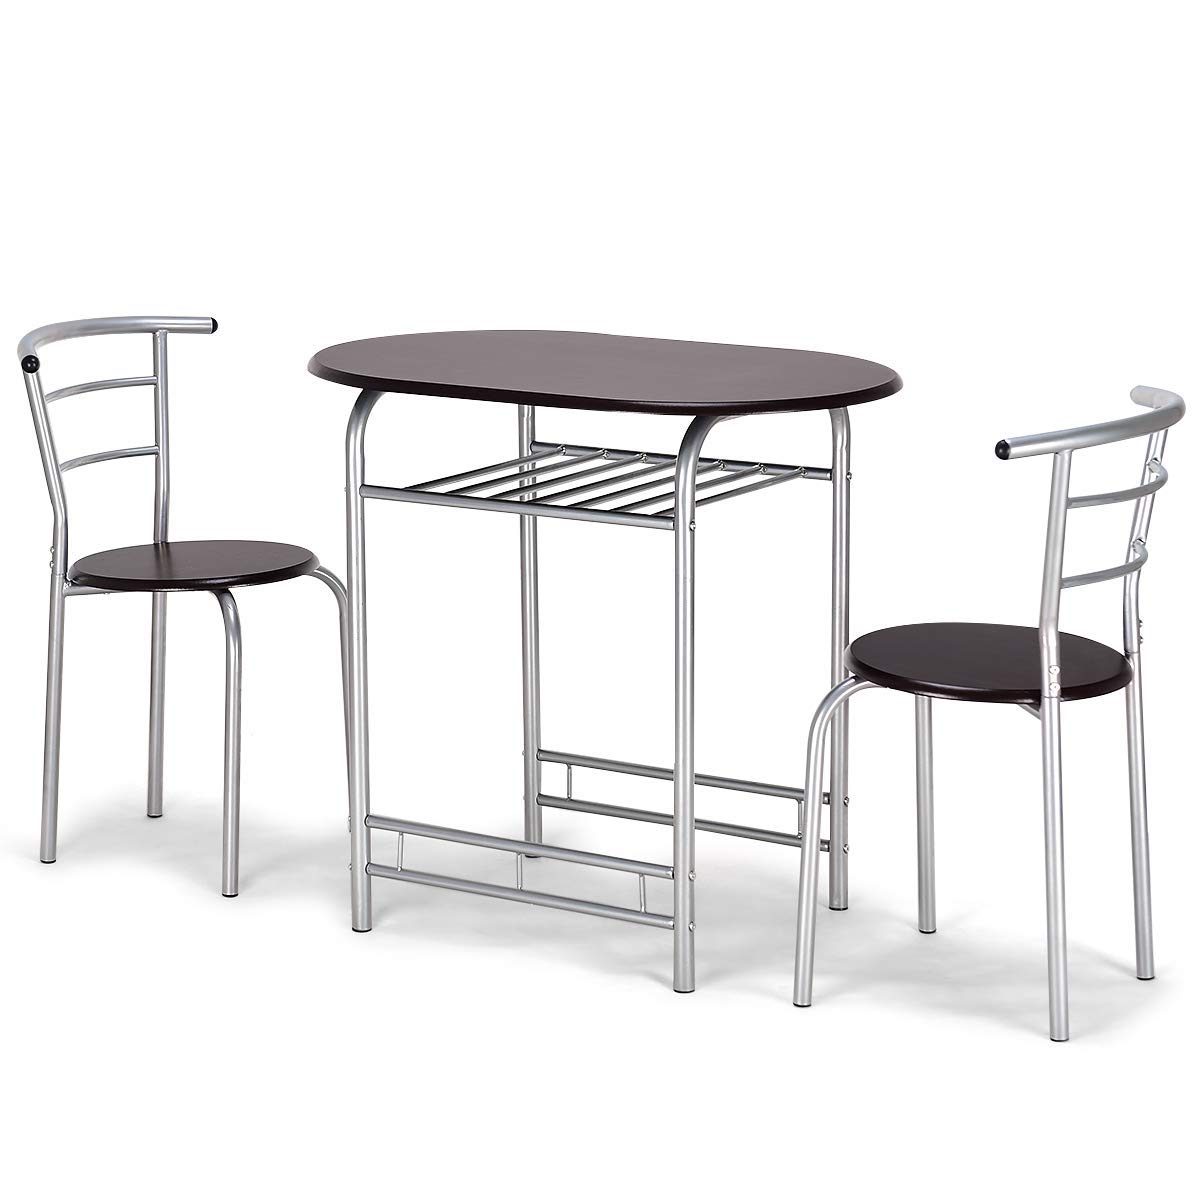 Giantex 3 PCS Bistro Dining Set Table and 2 Chairs Kitchen Furniture Pub Home Restaurant Table Chair Sets (Coffee) by Giantex